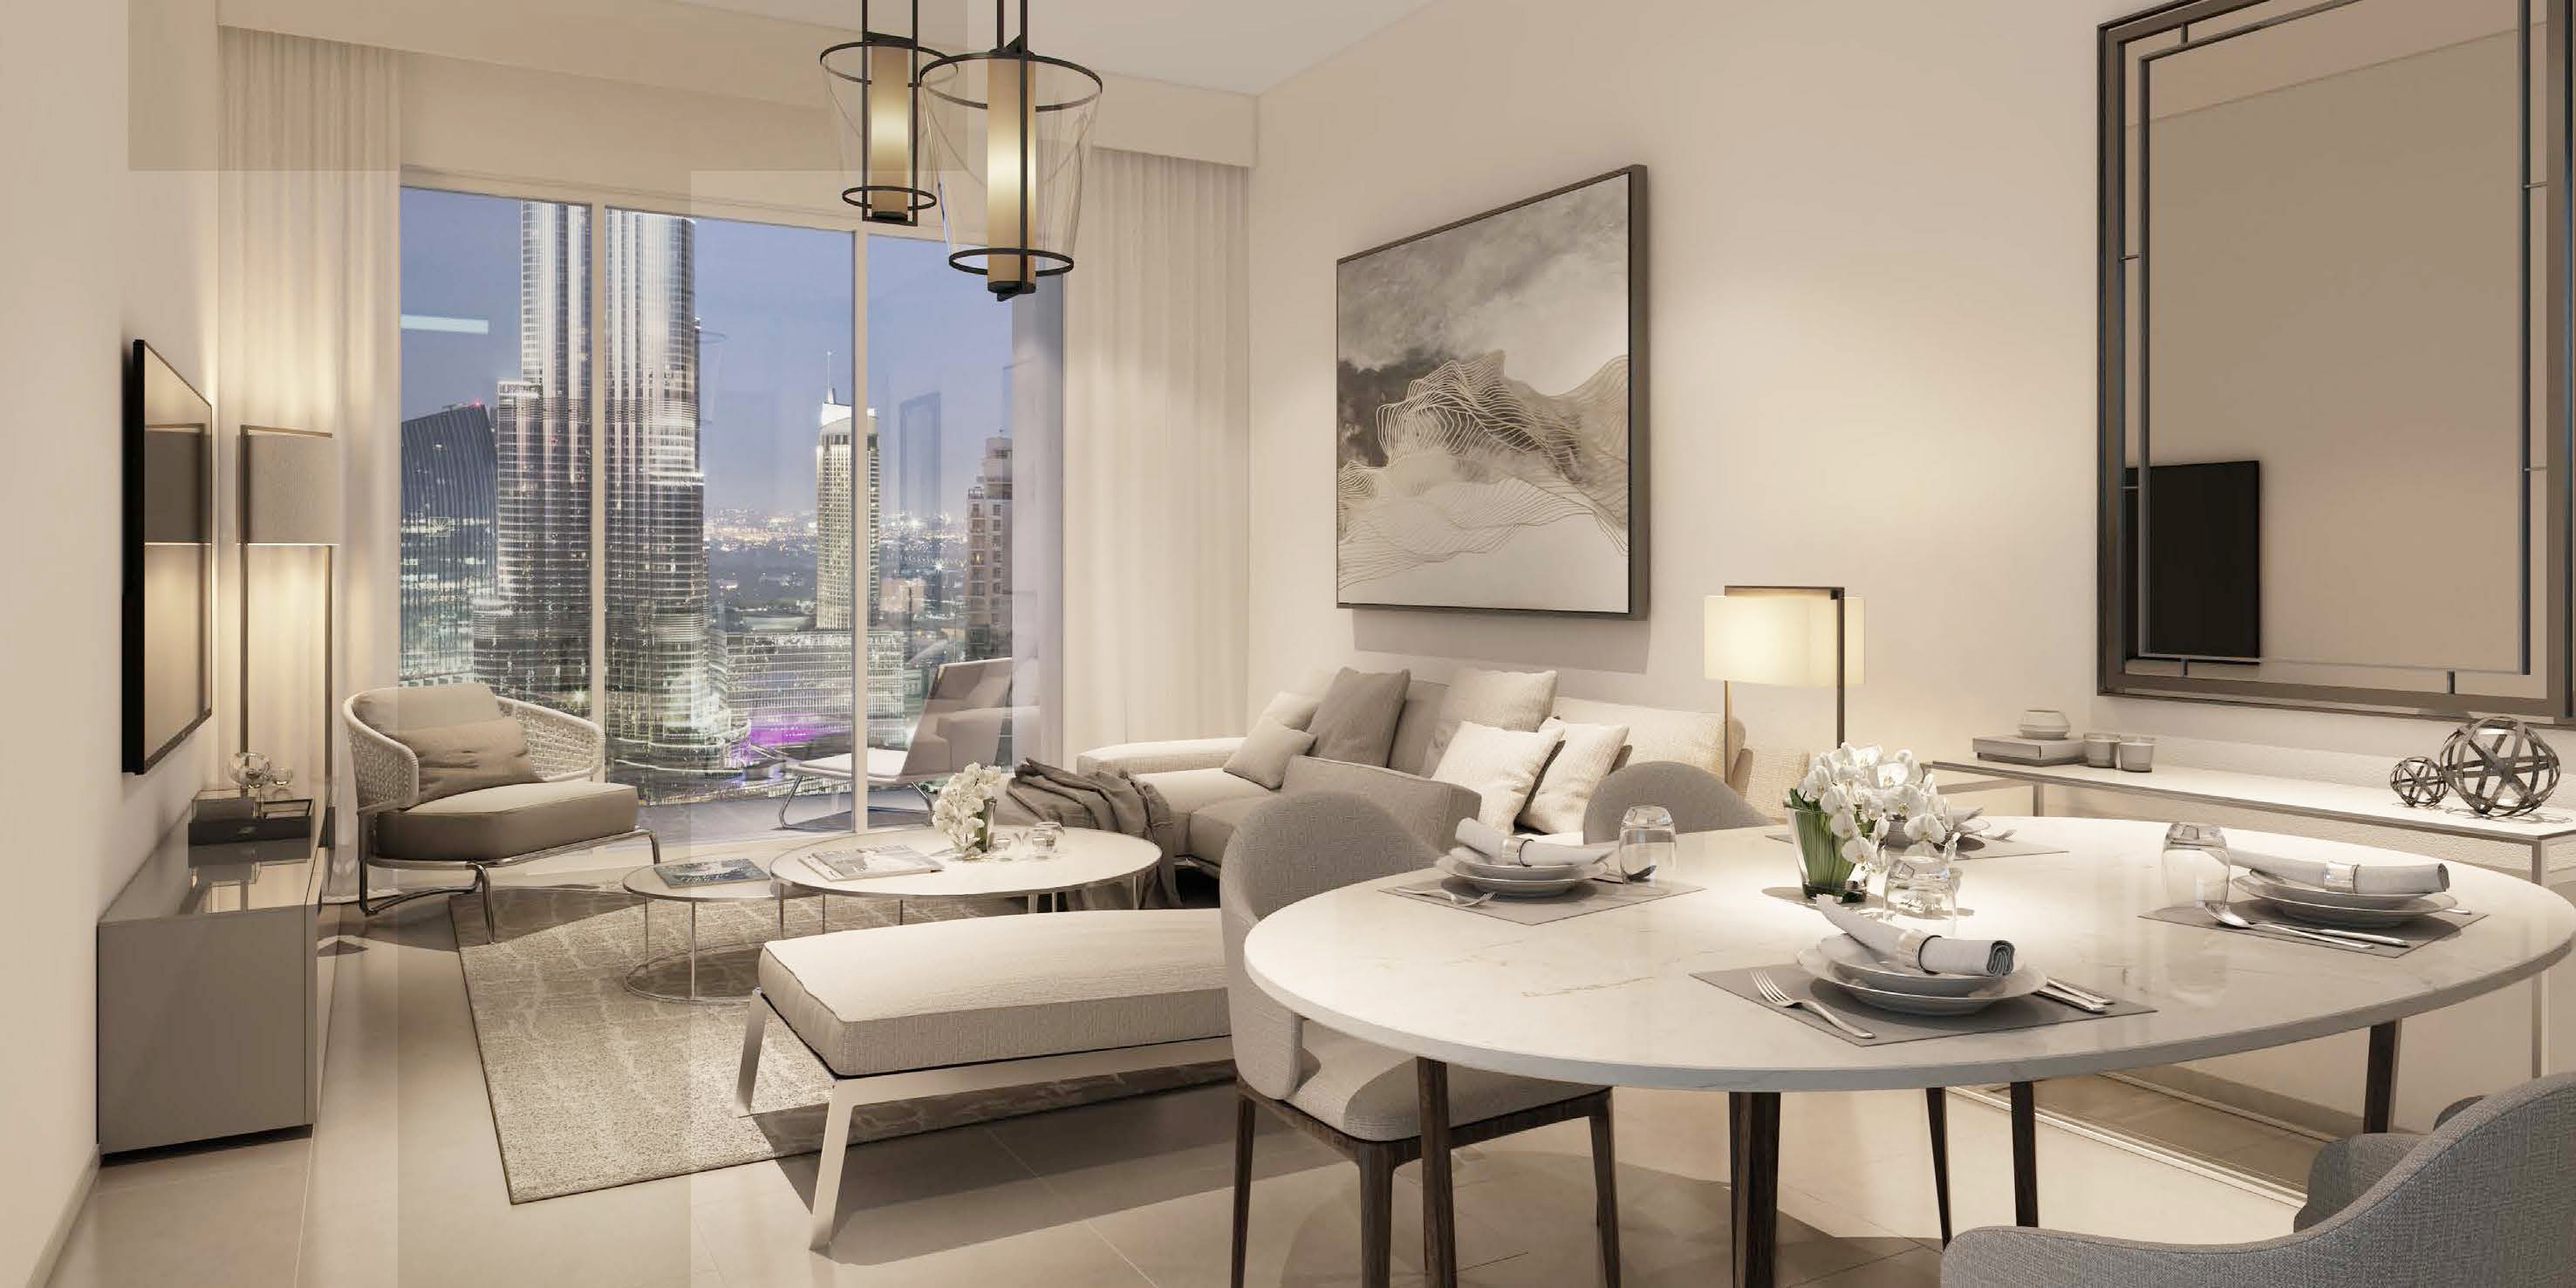 2 Bedroom Apartment For Sale In Act One Act Two Tower 2 Top Real Estate In Dubaitop Real